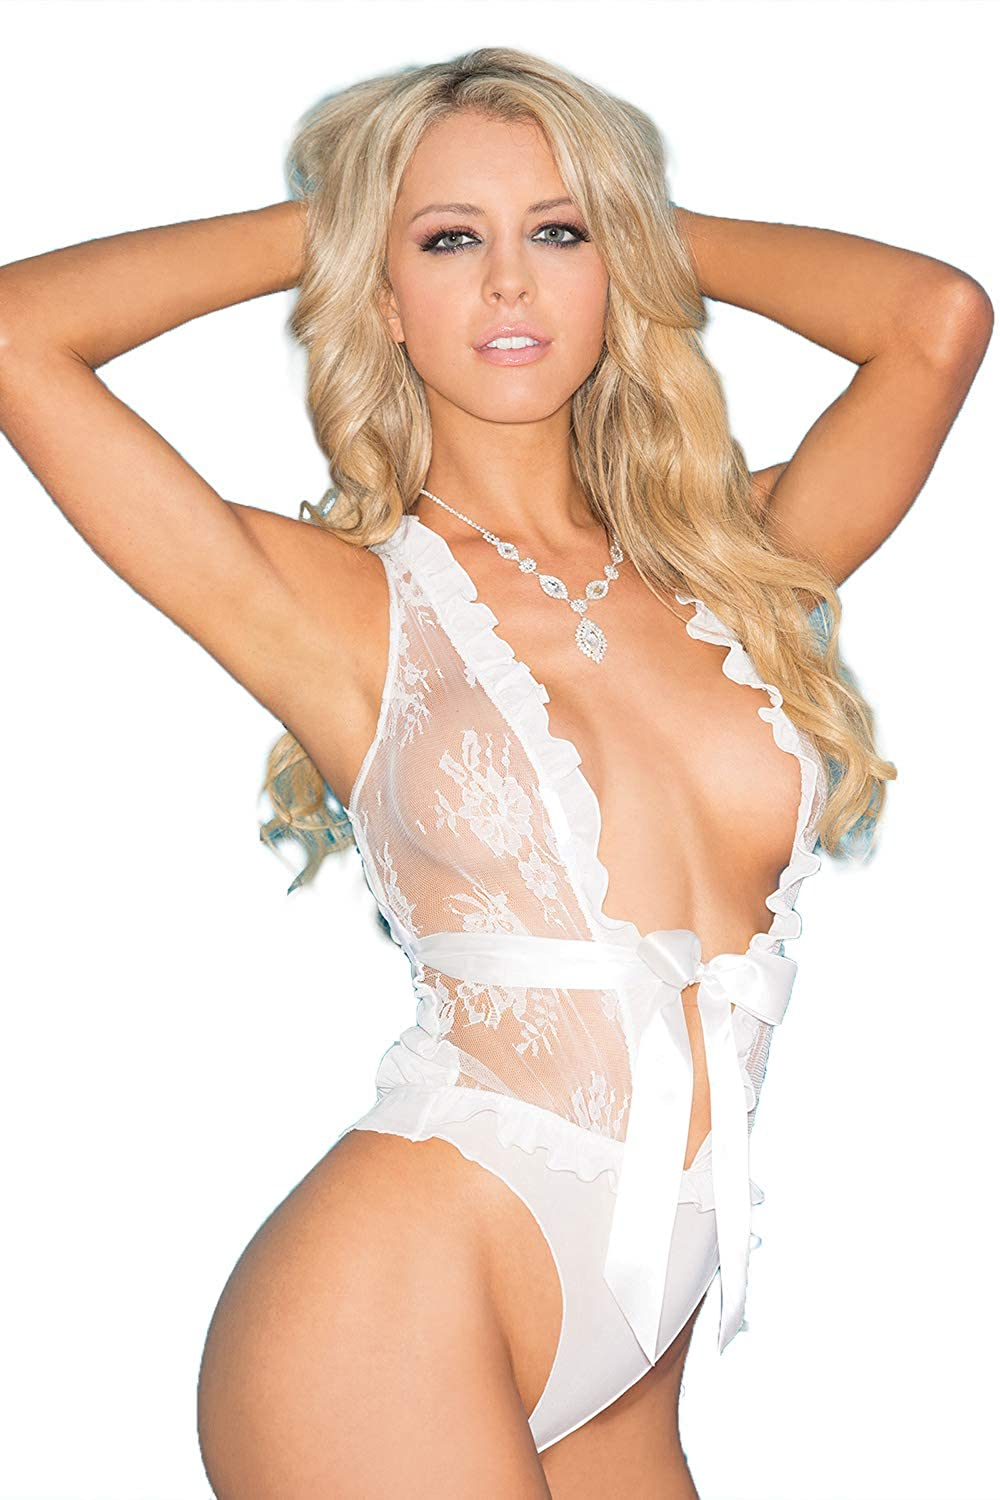 Stretch Lace and Sheer Mesh Teddy, Lace Teddy